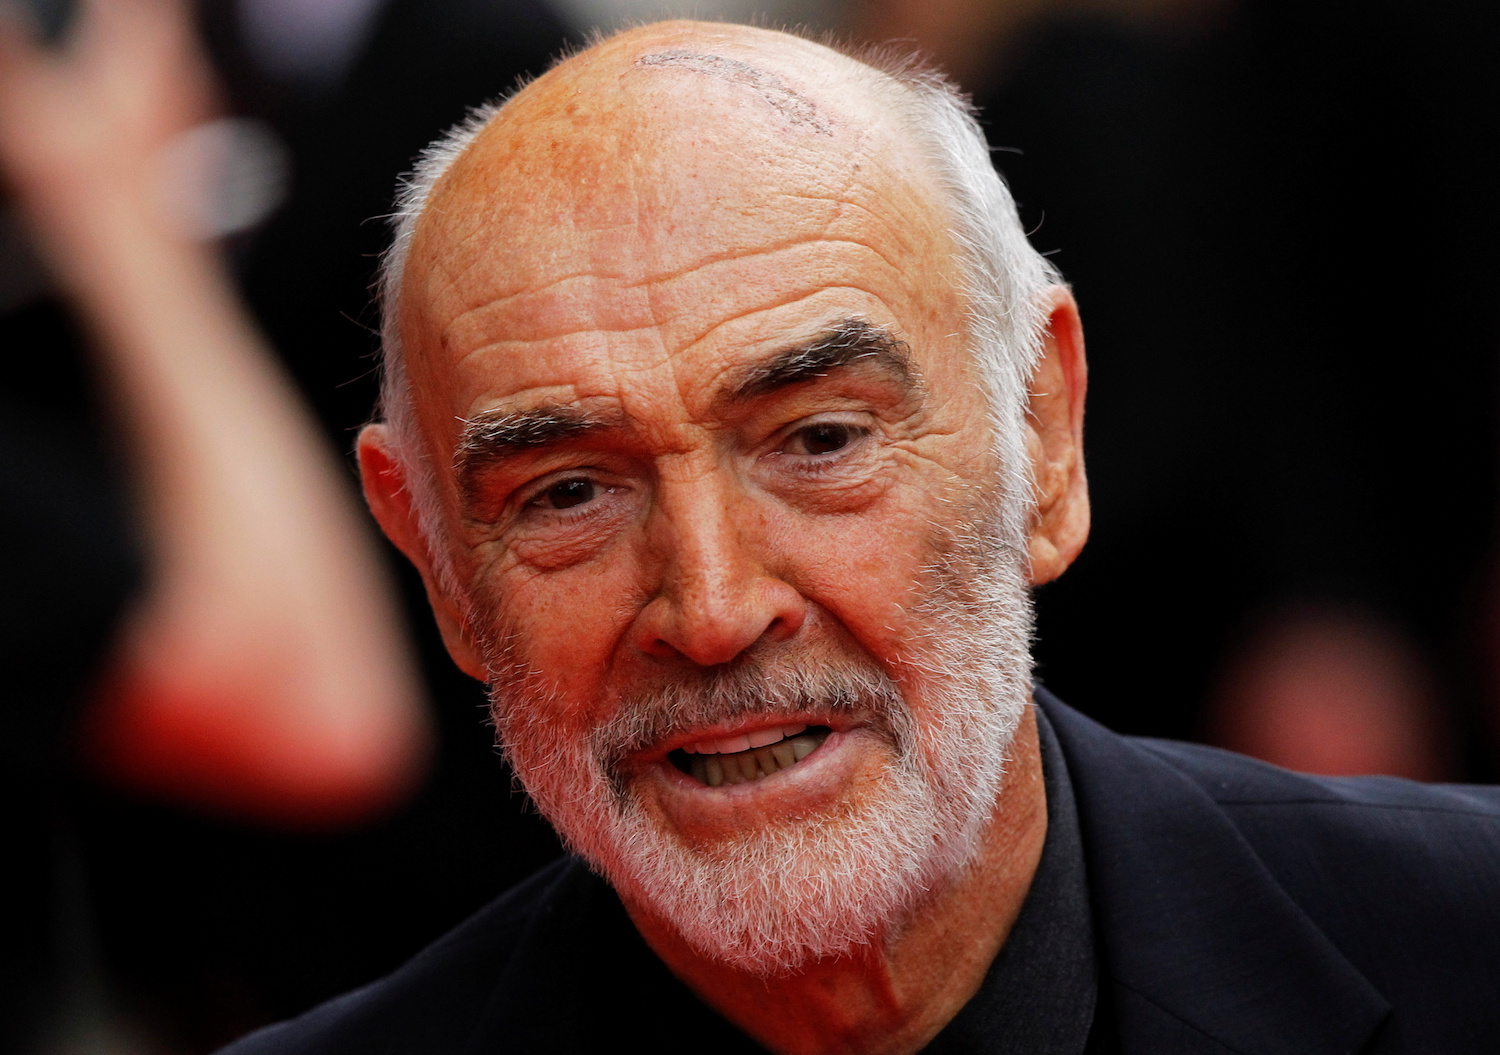 Sean Connery arrives for the Edinburgh International Film Festival opening night showing of the animated movie The Illusionist, in Edinburgh in June 2010. (Reuters Photo)